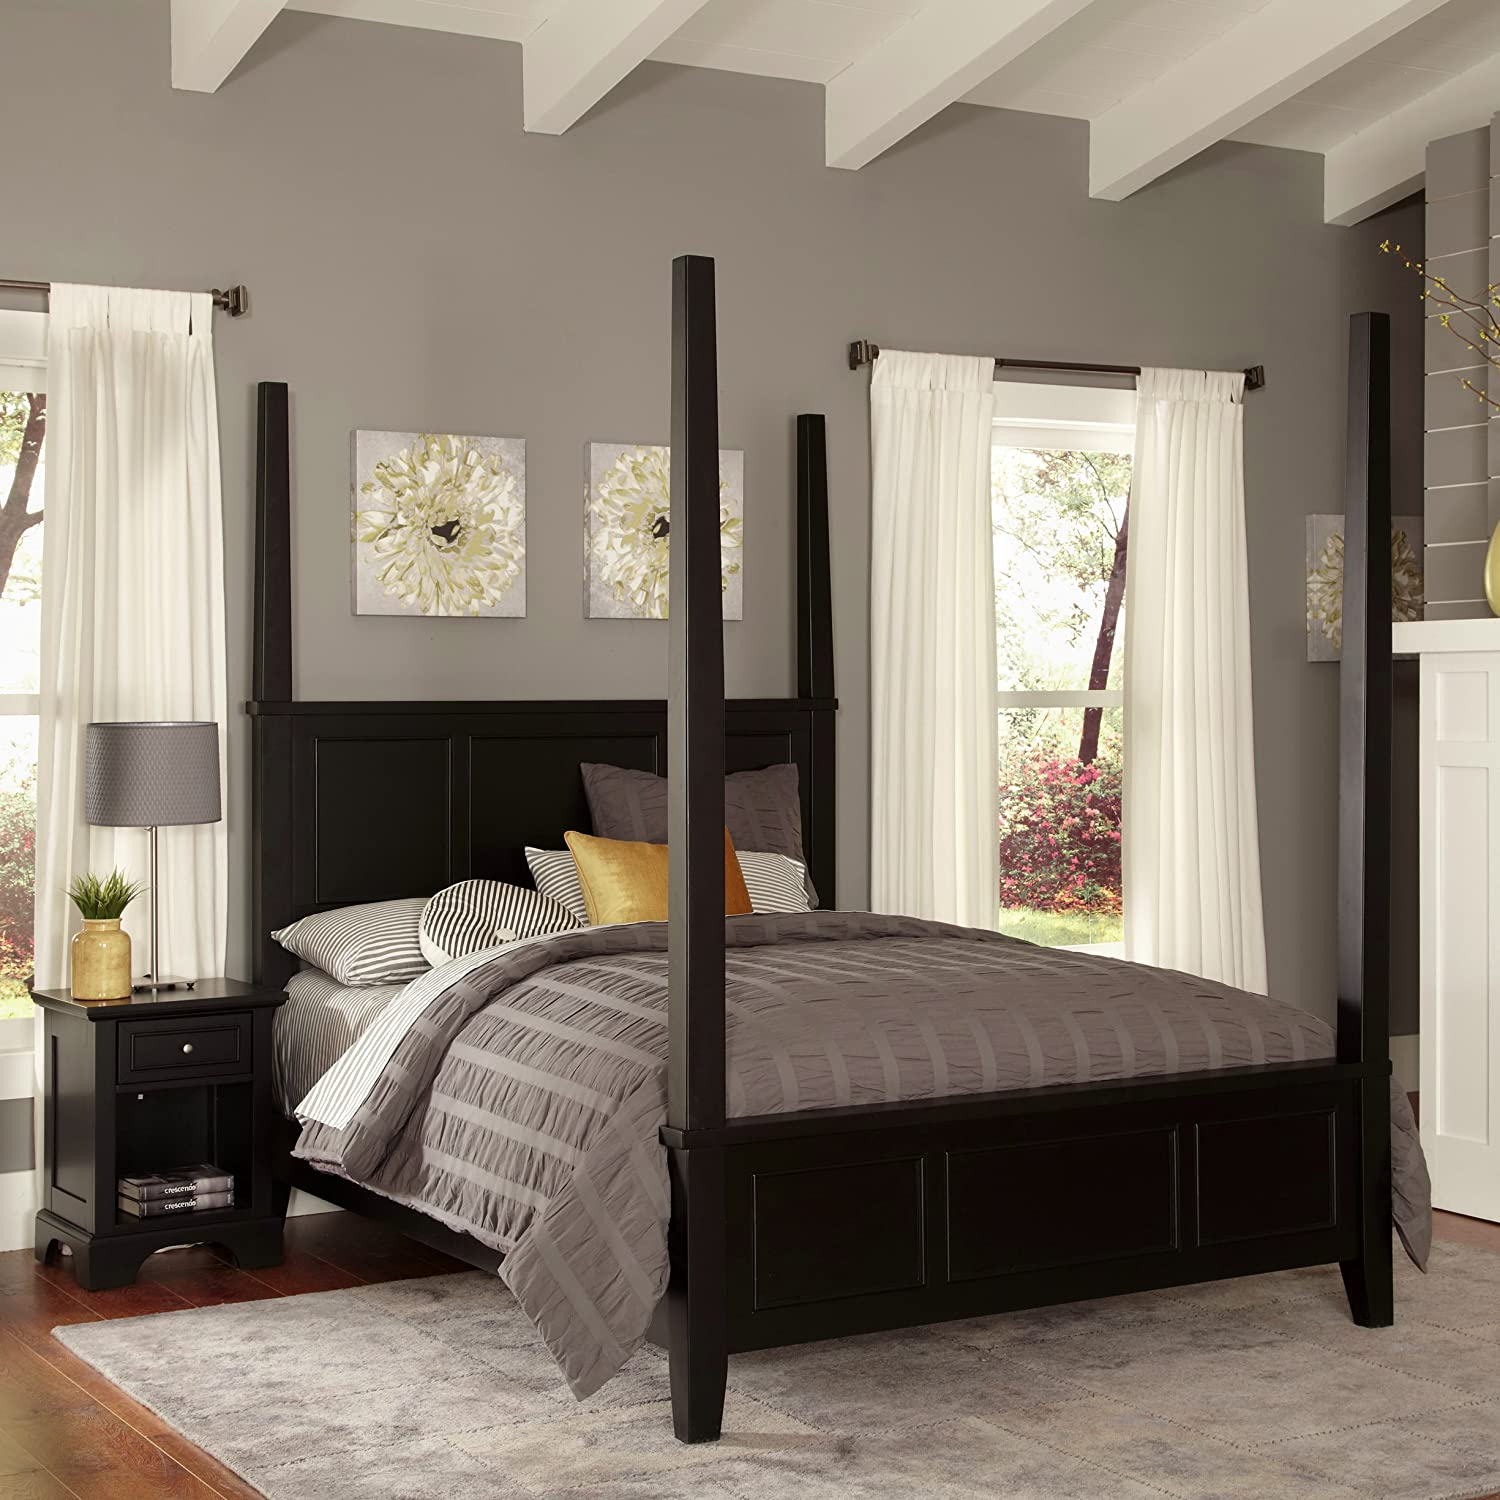 Home Styles Bedford Black Queen Poster Bed and Night Stand